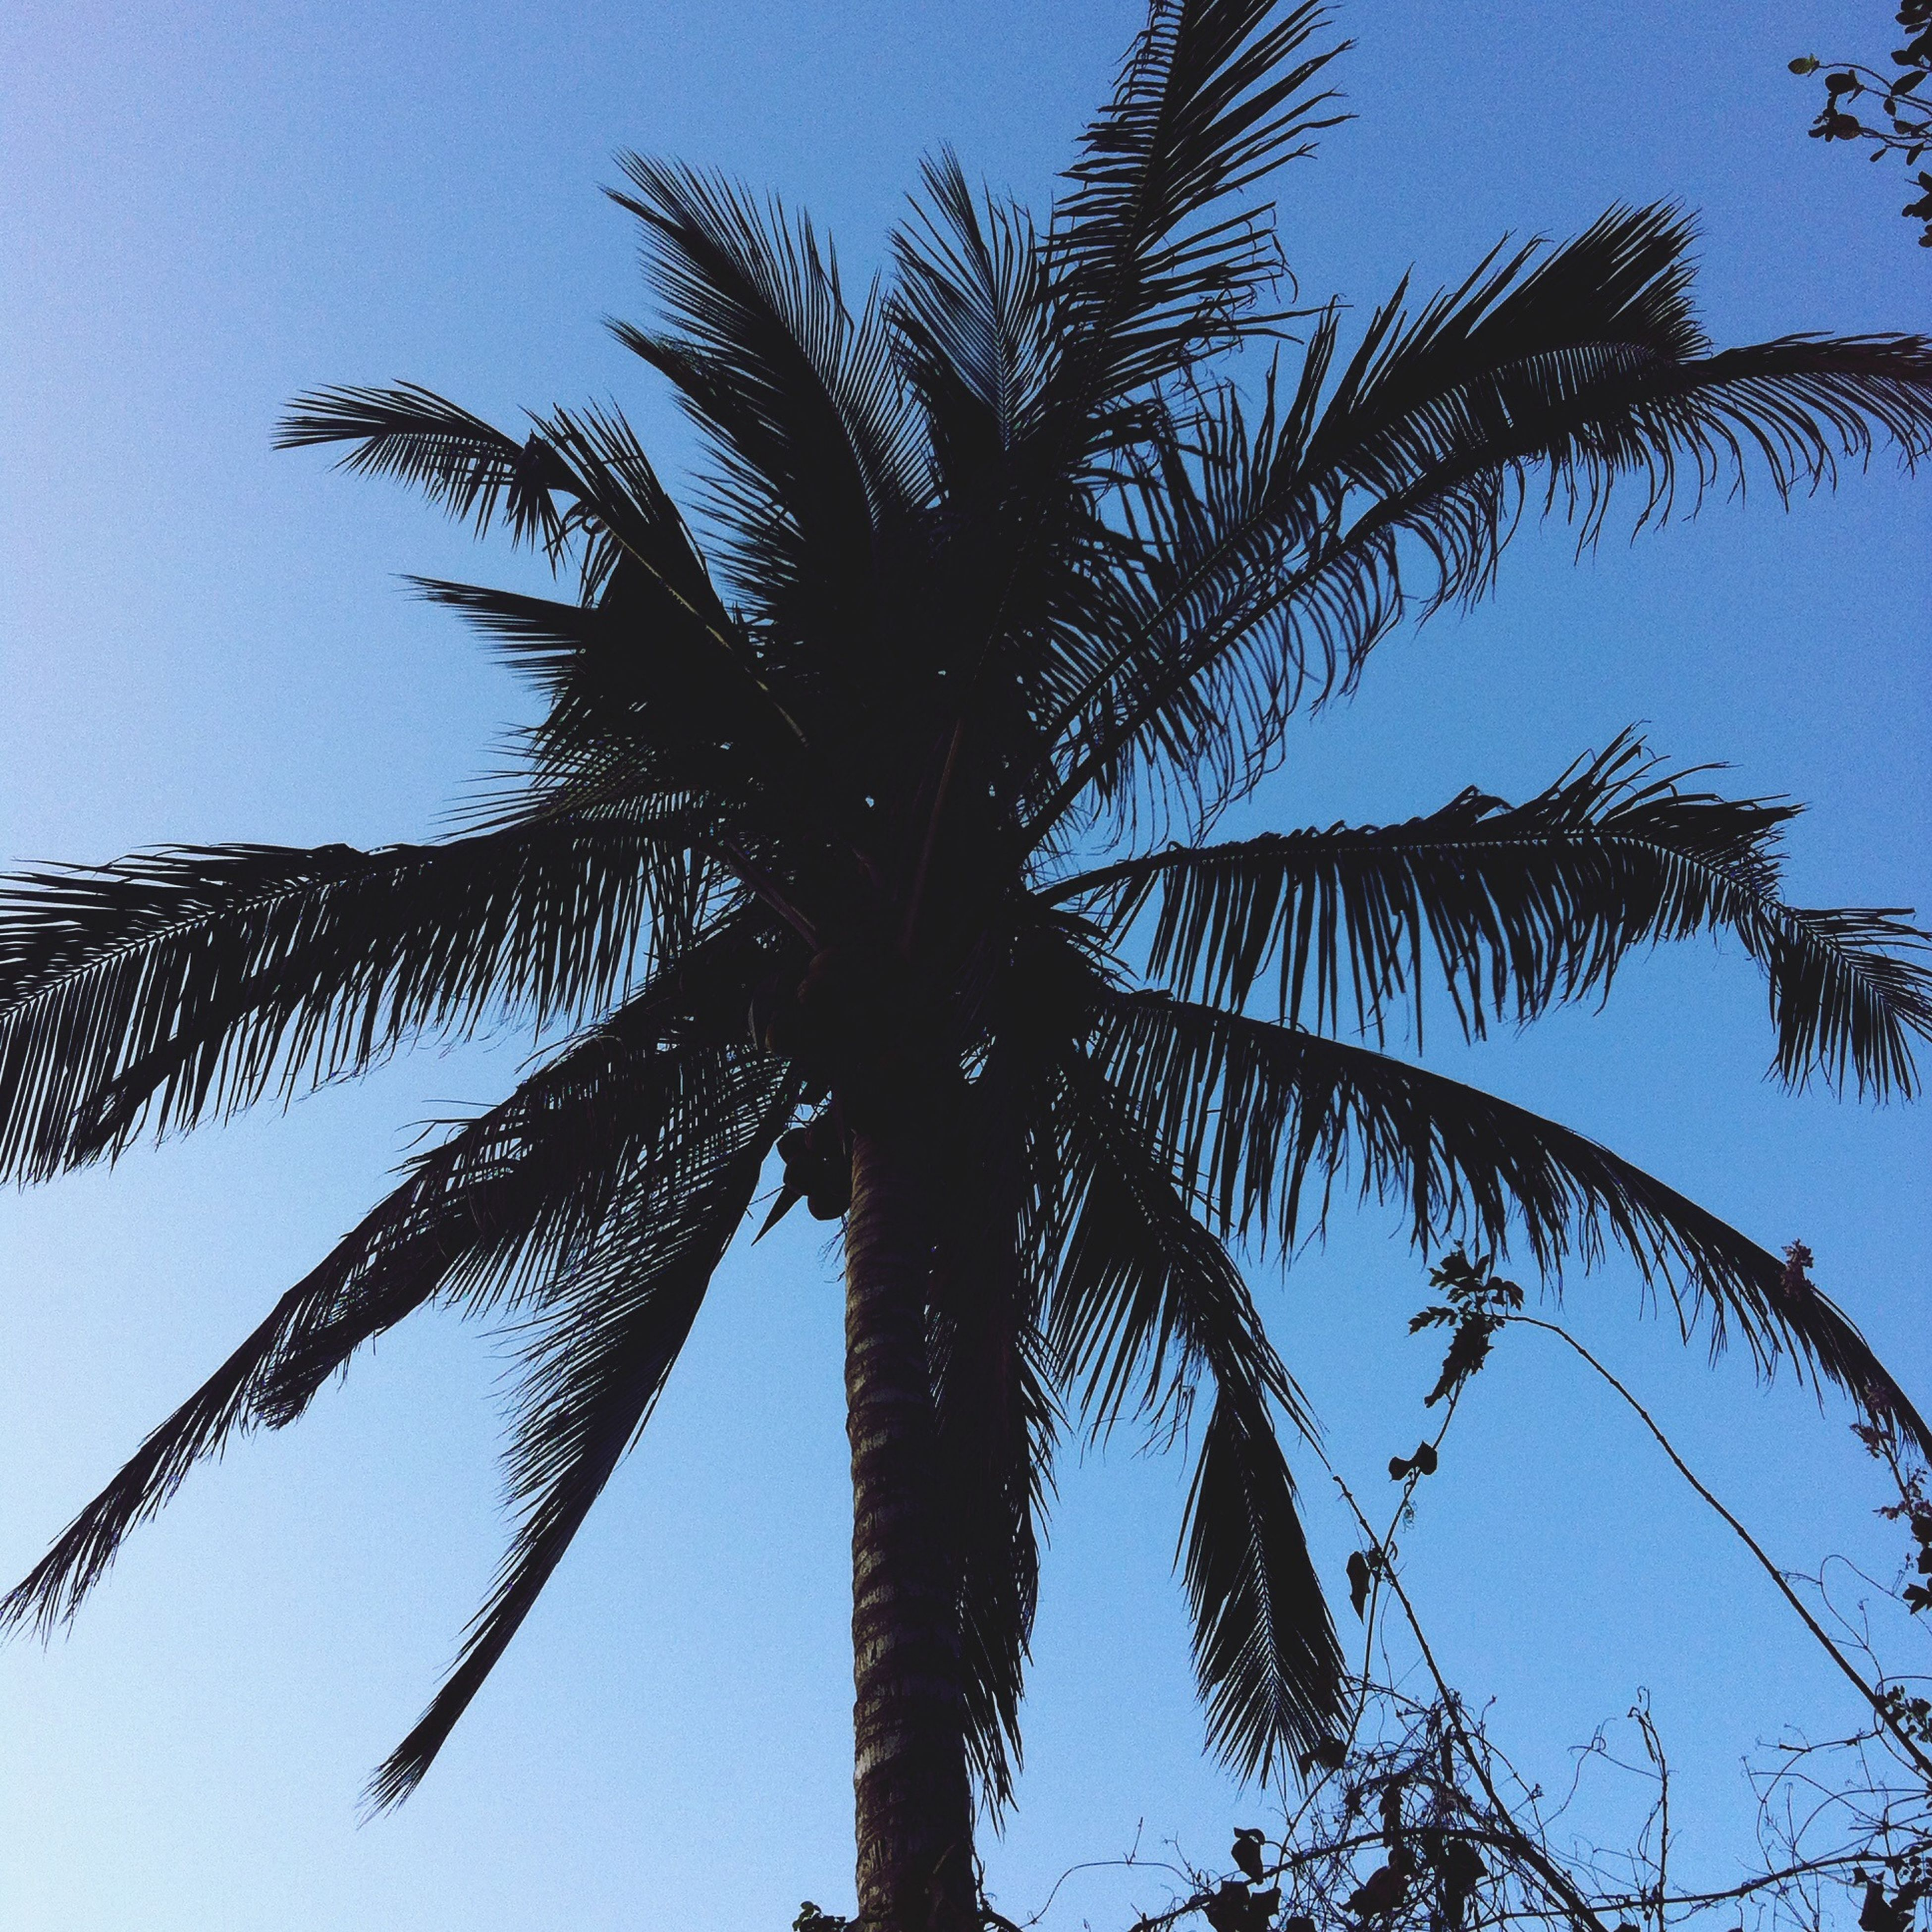 low angle view, palm tree, tree, growth, tree trunk, clear sky, sky, blue, nature, branch, tranquility, silhouette, beauty in nature, palm leaf, outdoors, tall - high, no people, sunlight, day, coconut palm tree